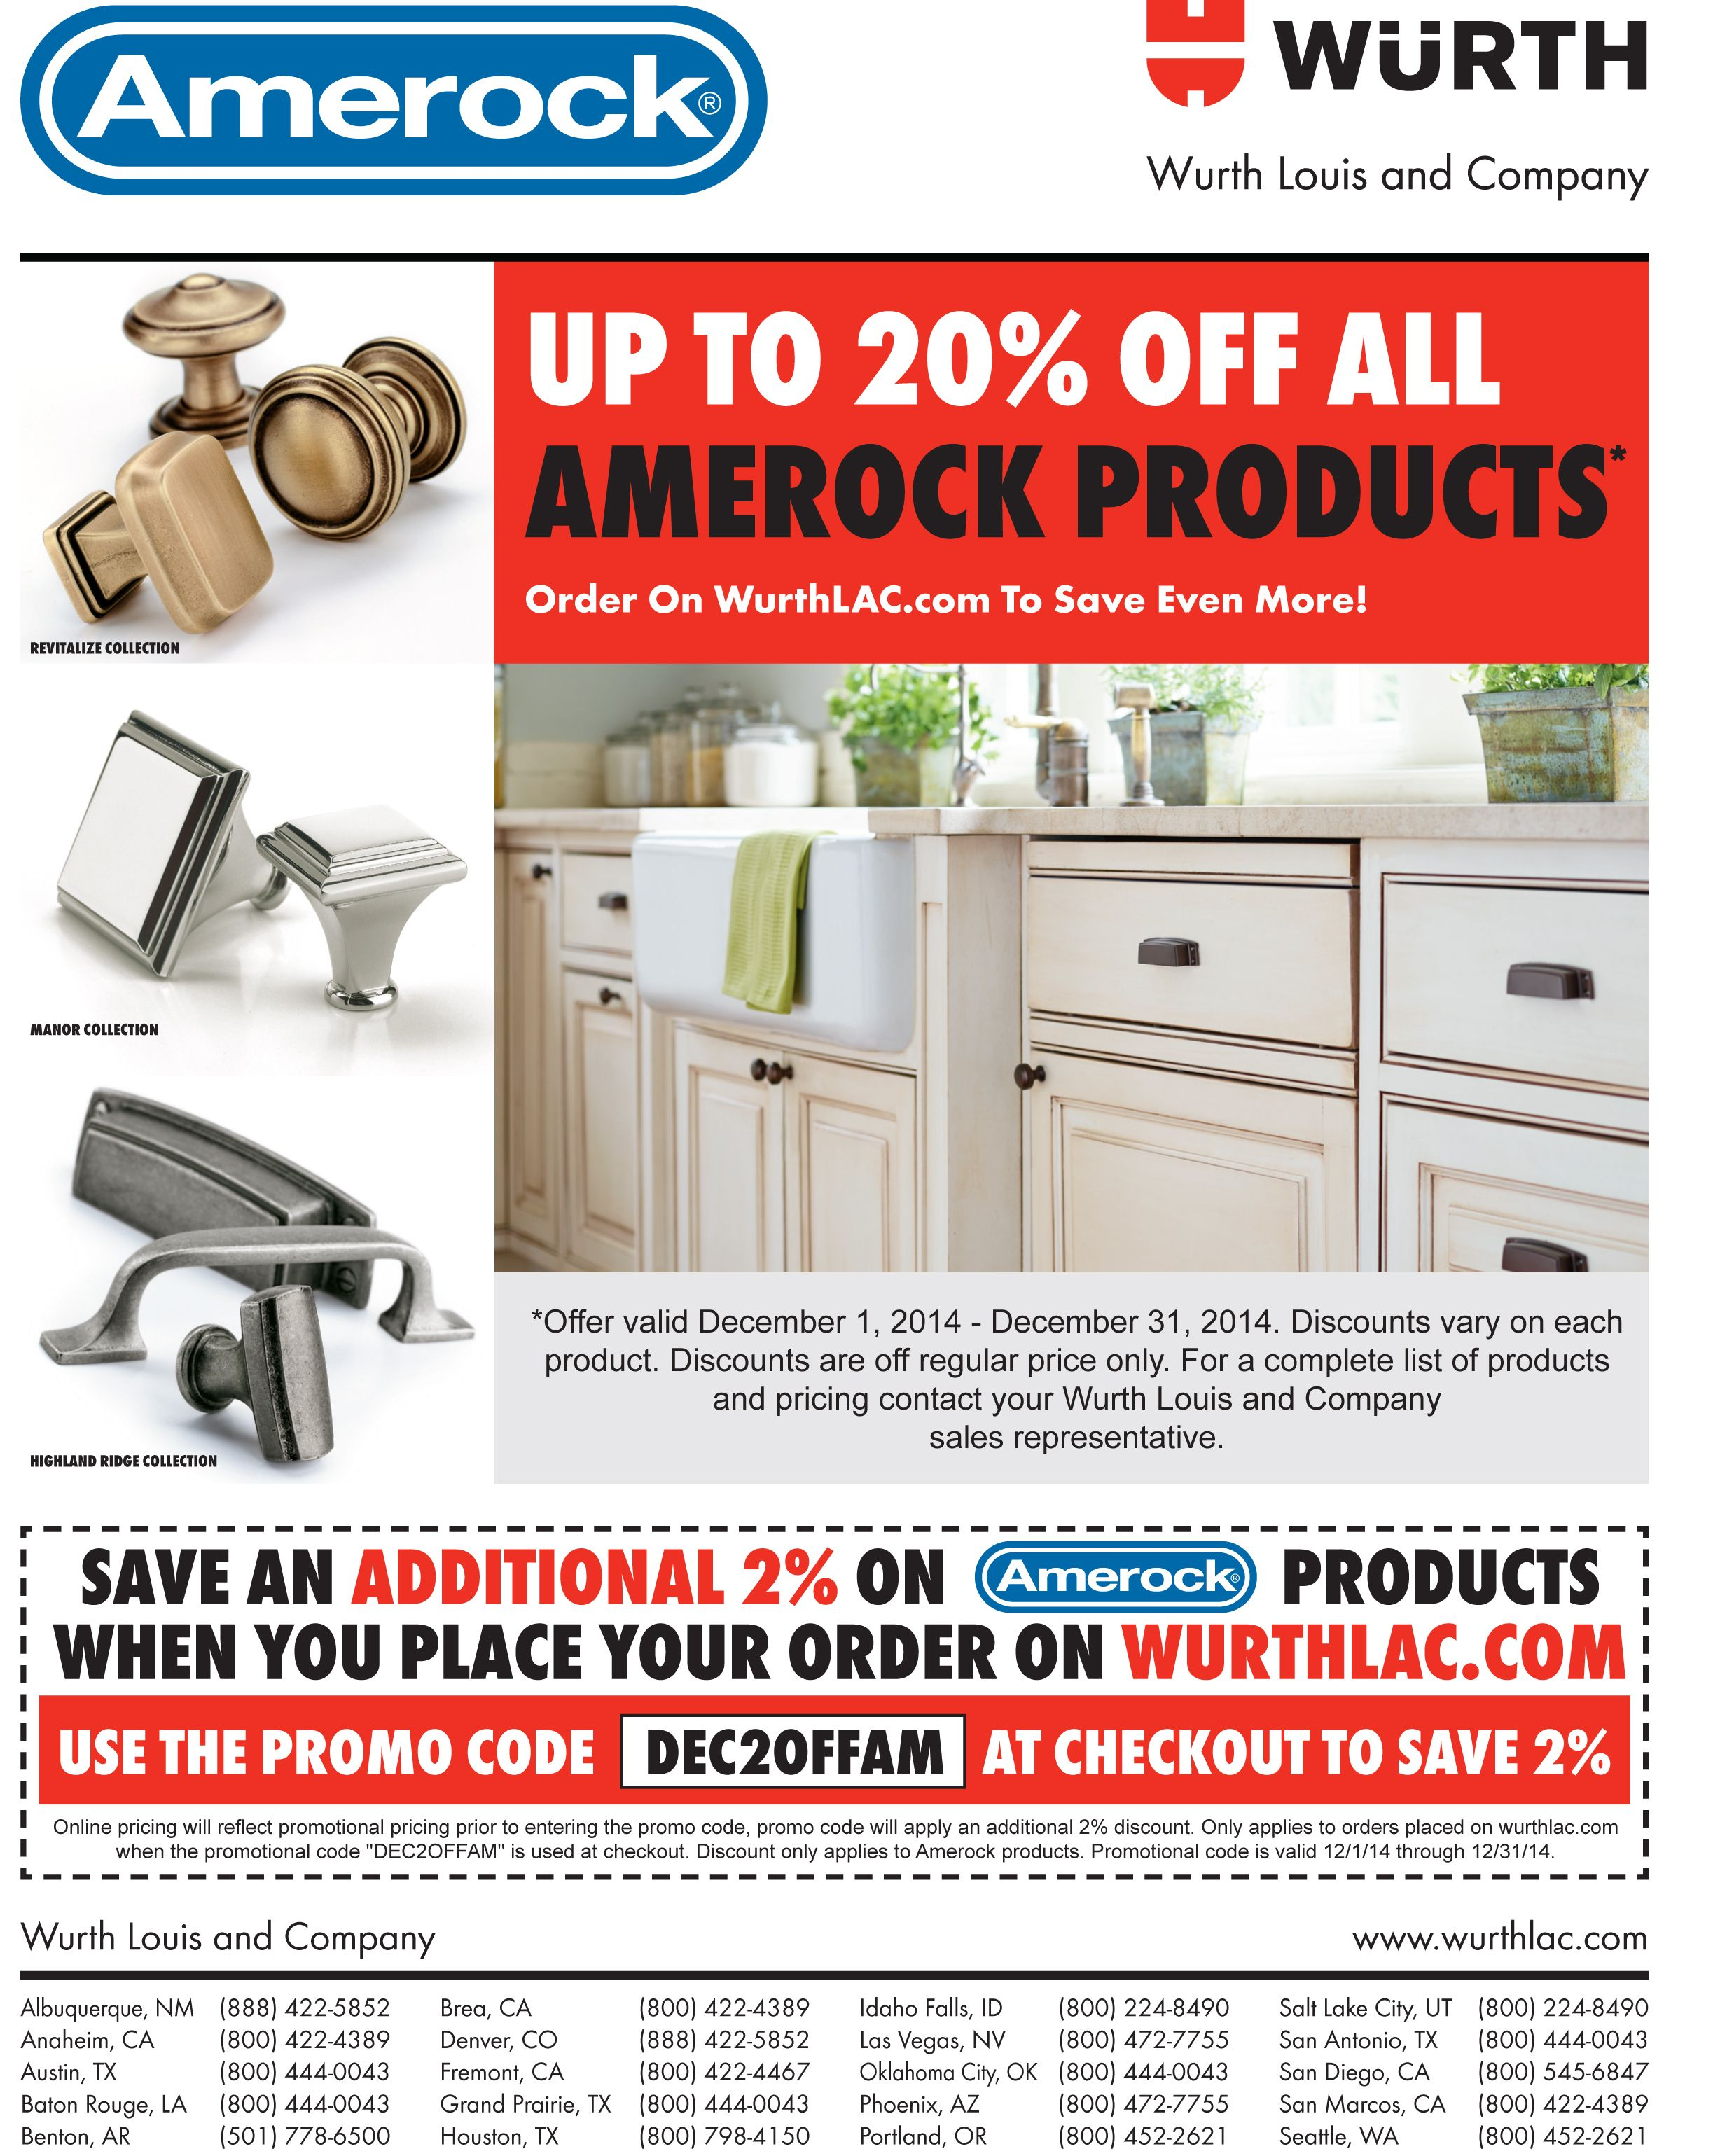 Decorative Hardware From Amerock Can Make Any Room Look Good But It Looks Even Better With You Get A Discoun Amerock How To Better Yourself Decorative Hardware